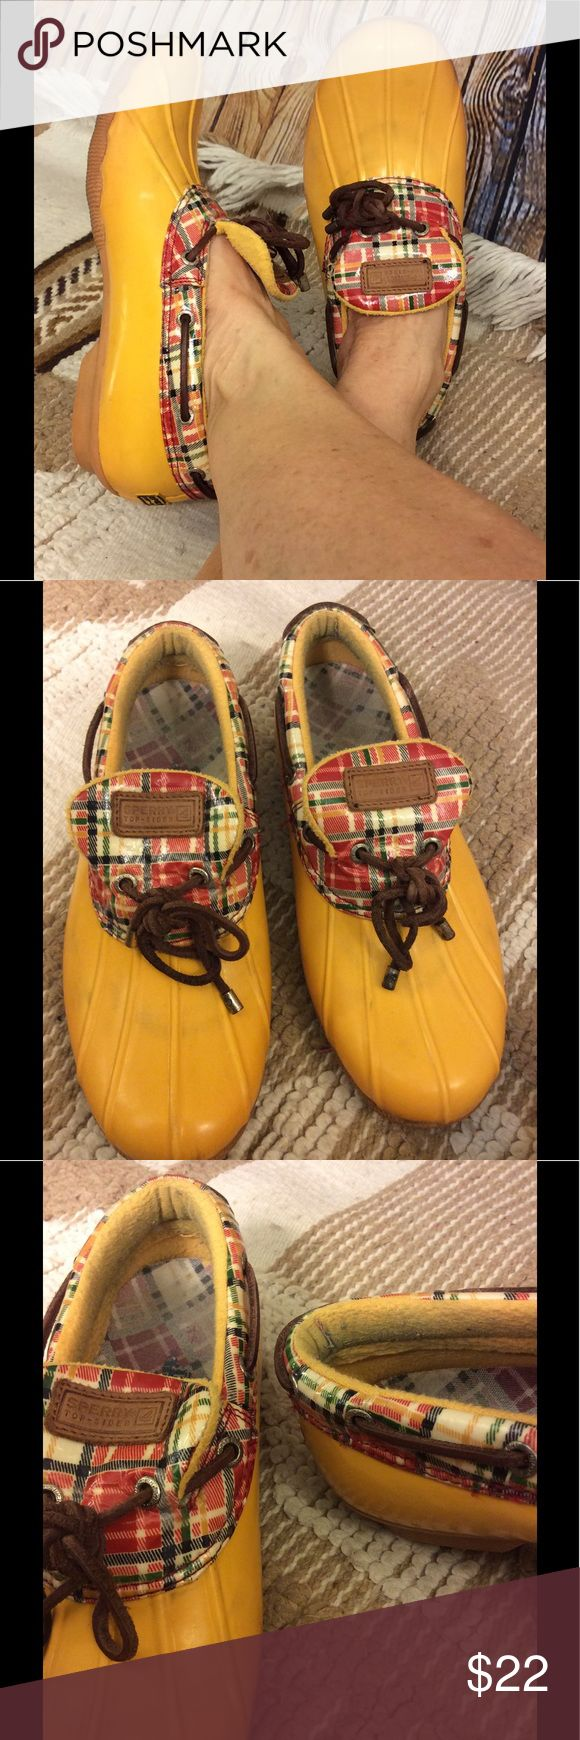 Sperry Topsider's yellow duck rain shoes size 8 Cute Sperry Topsiders yellow duck rain shoe Plaid  around upper portion of shoe Minor wear on bottom Does show wear on the inside Has dark discoloration toward front part of toe as shown in pictures Length from heel to toe approximately 10 1/4 inches  width of shoe is approximately 4 inches Leather shoe string Super cute and still have plenty of life left Sperry Top-Sider Shoes Winter & Rain Boots